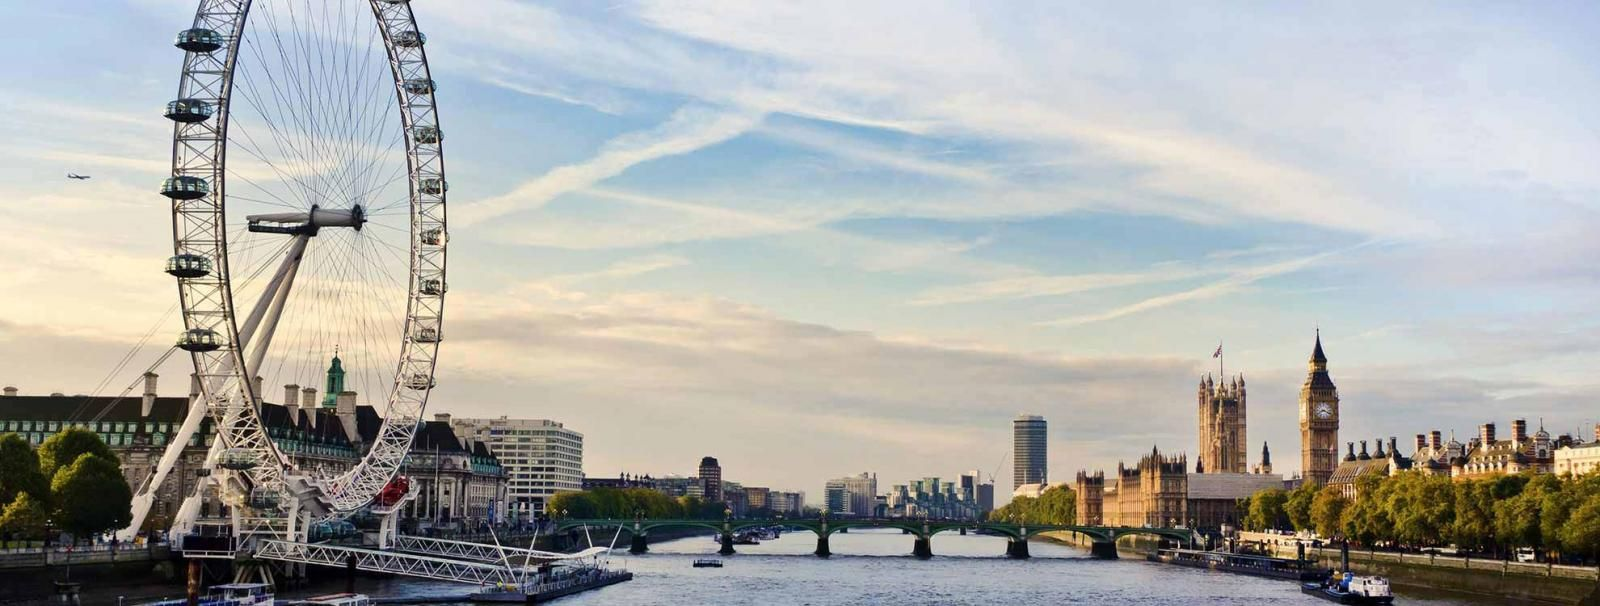 Find and get best apartments featured as::-  -Centrally located and well connected to london city - Few minutes walk from Canary Wharf underground station - O2 Arena is 3 minutes' tube ride